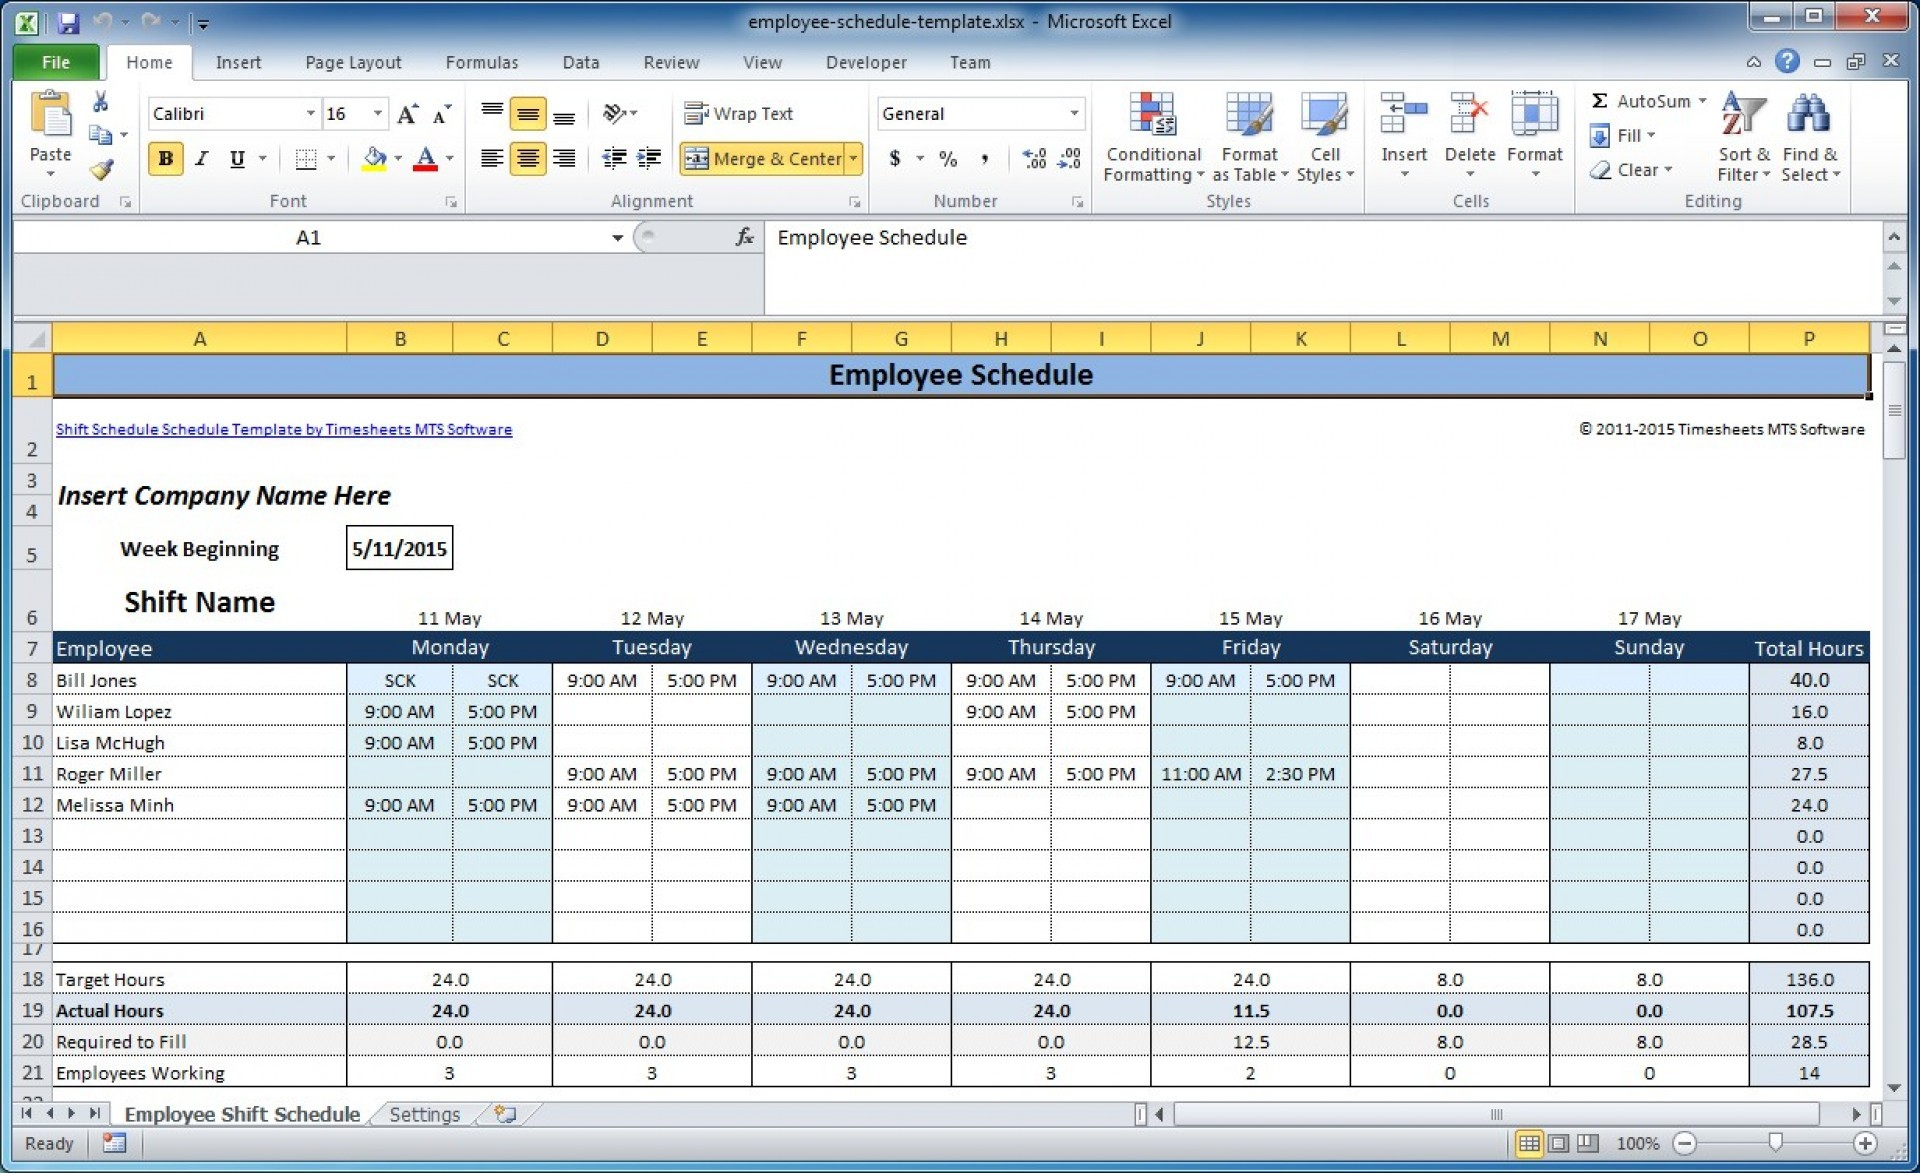 Employee Shift Schedule Template Excel Unique 001 Employee Shift Schedule Template Excel Remarkable Ideas For Mac